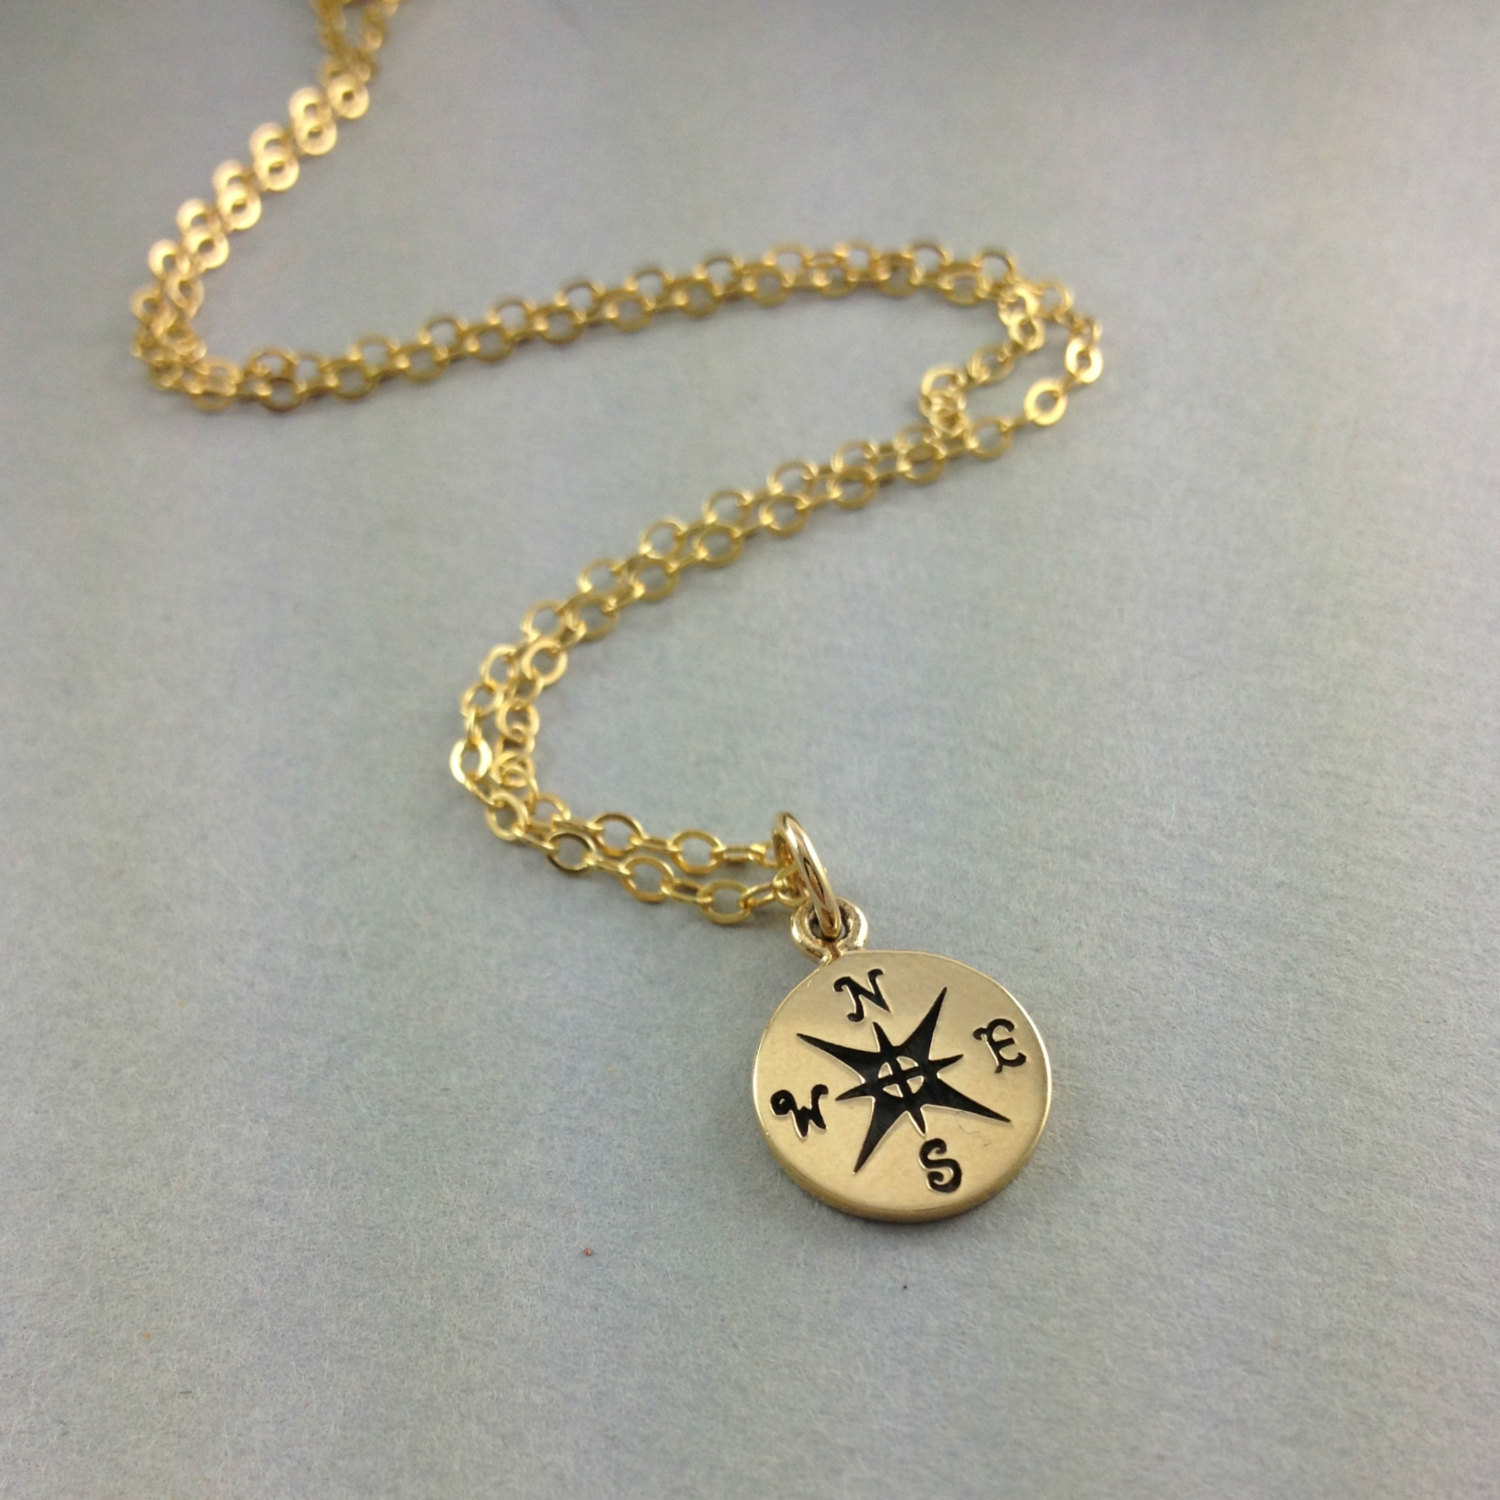 Compass Necklace Travelers Best Friend Gift Gold